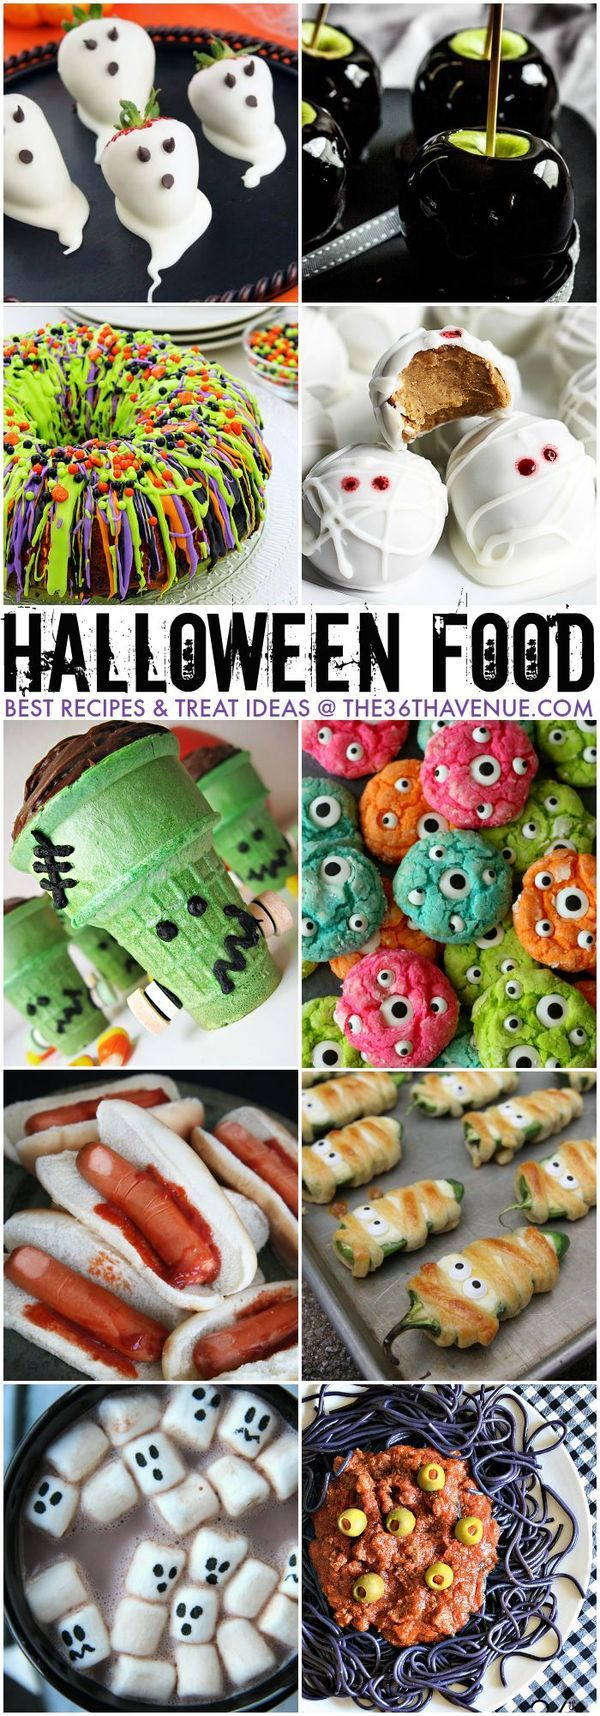 Halloween Treats and Recipes Collection Guide - from main dishes to desserts, these food crafts are sure to impress your party guests!